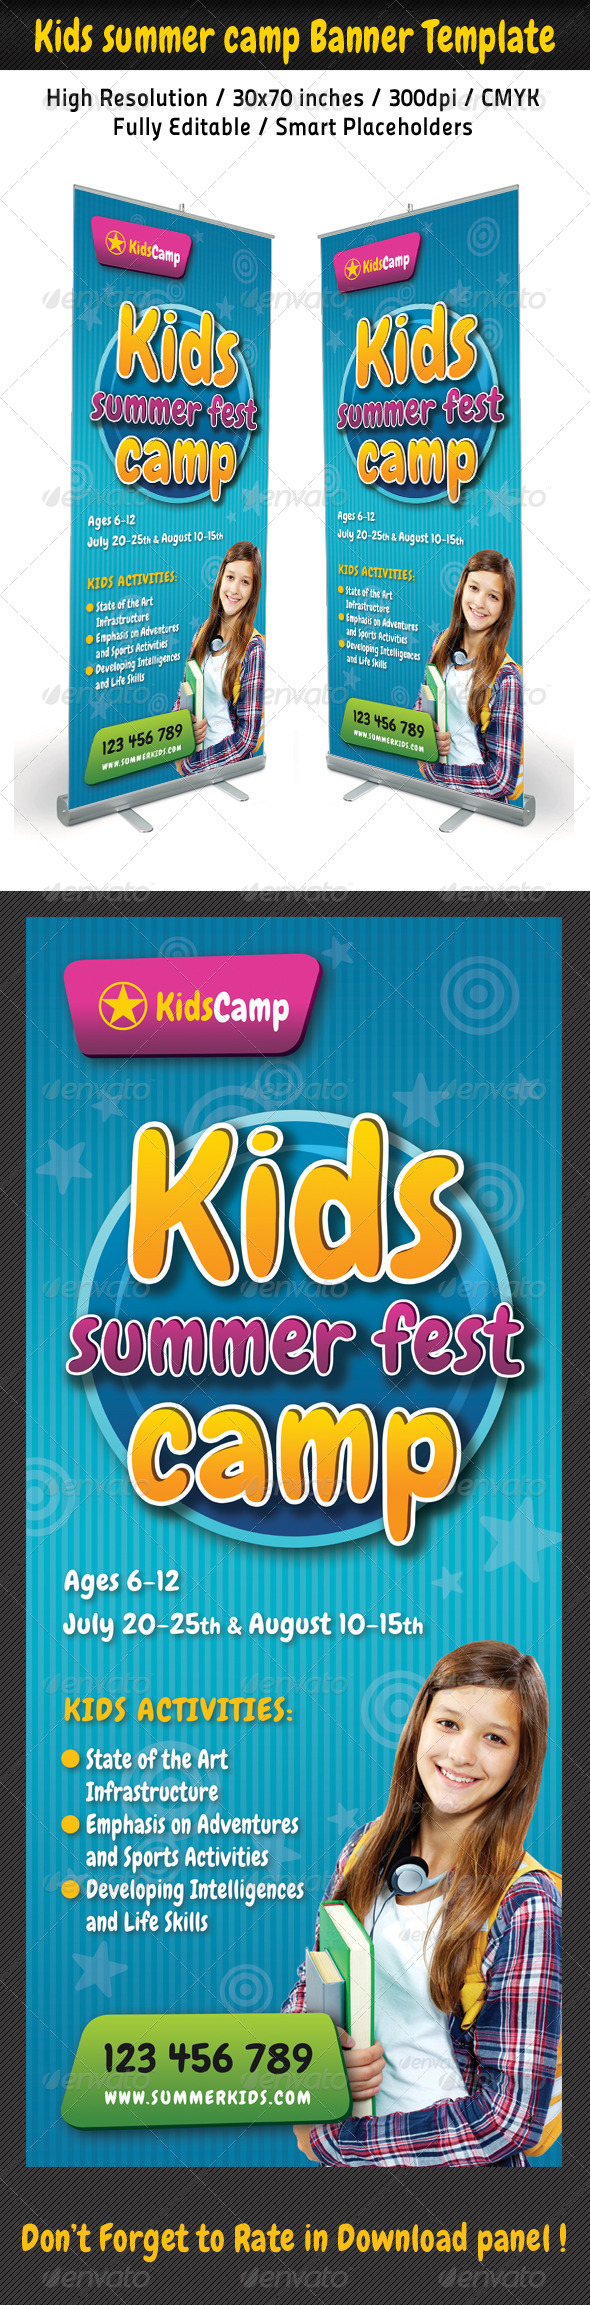 GraphicRiver Kids Summer Camp Banner Template 02 8047283